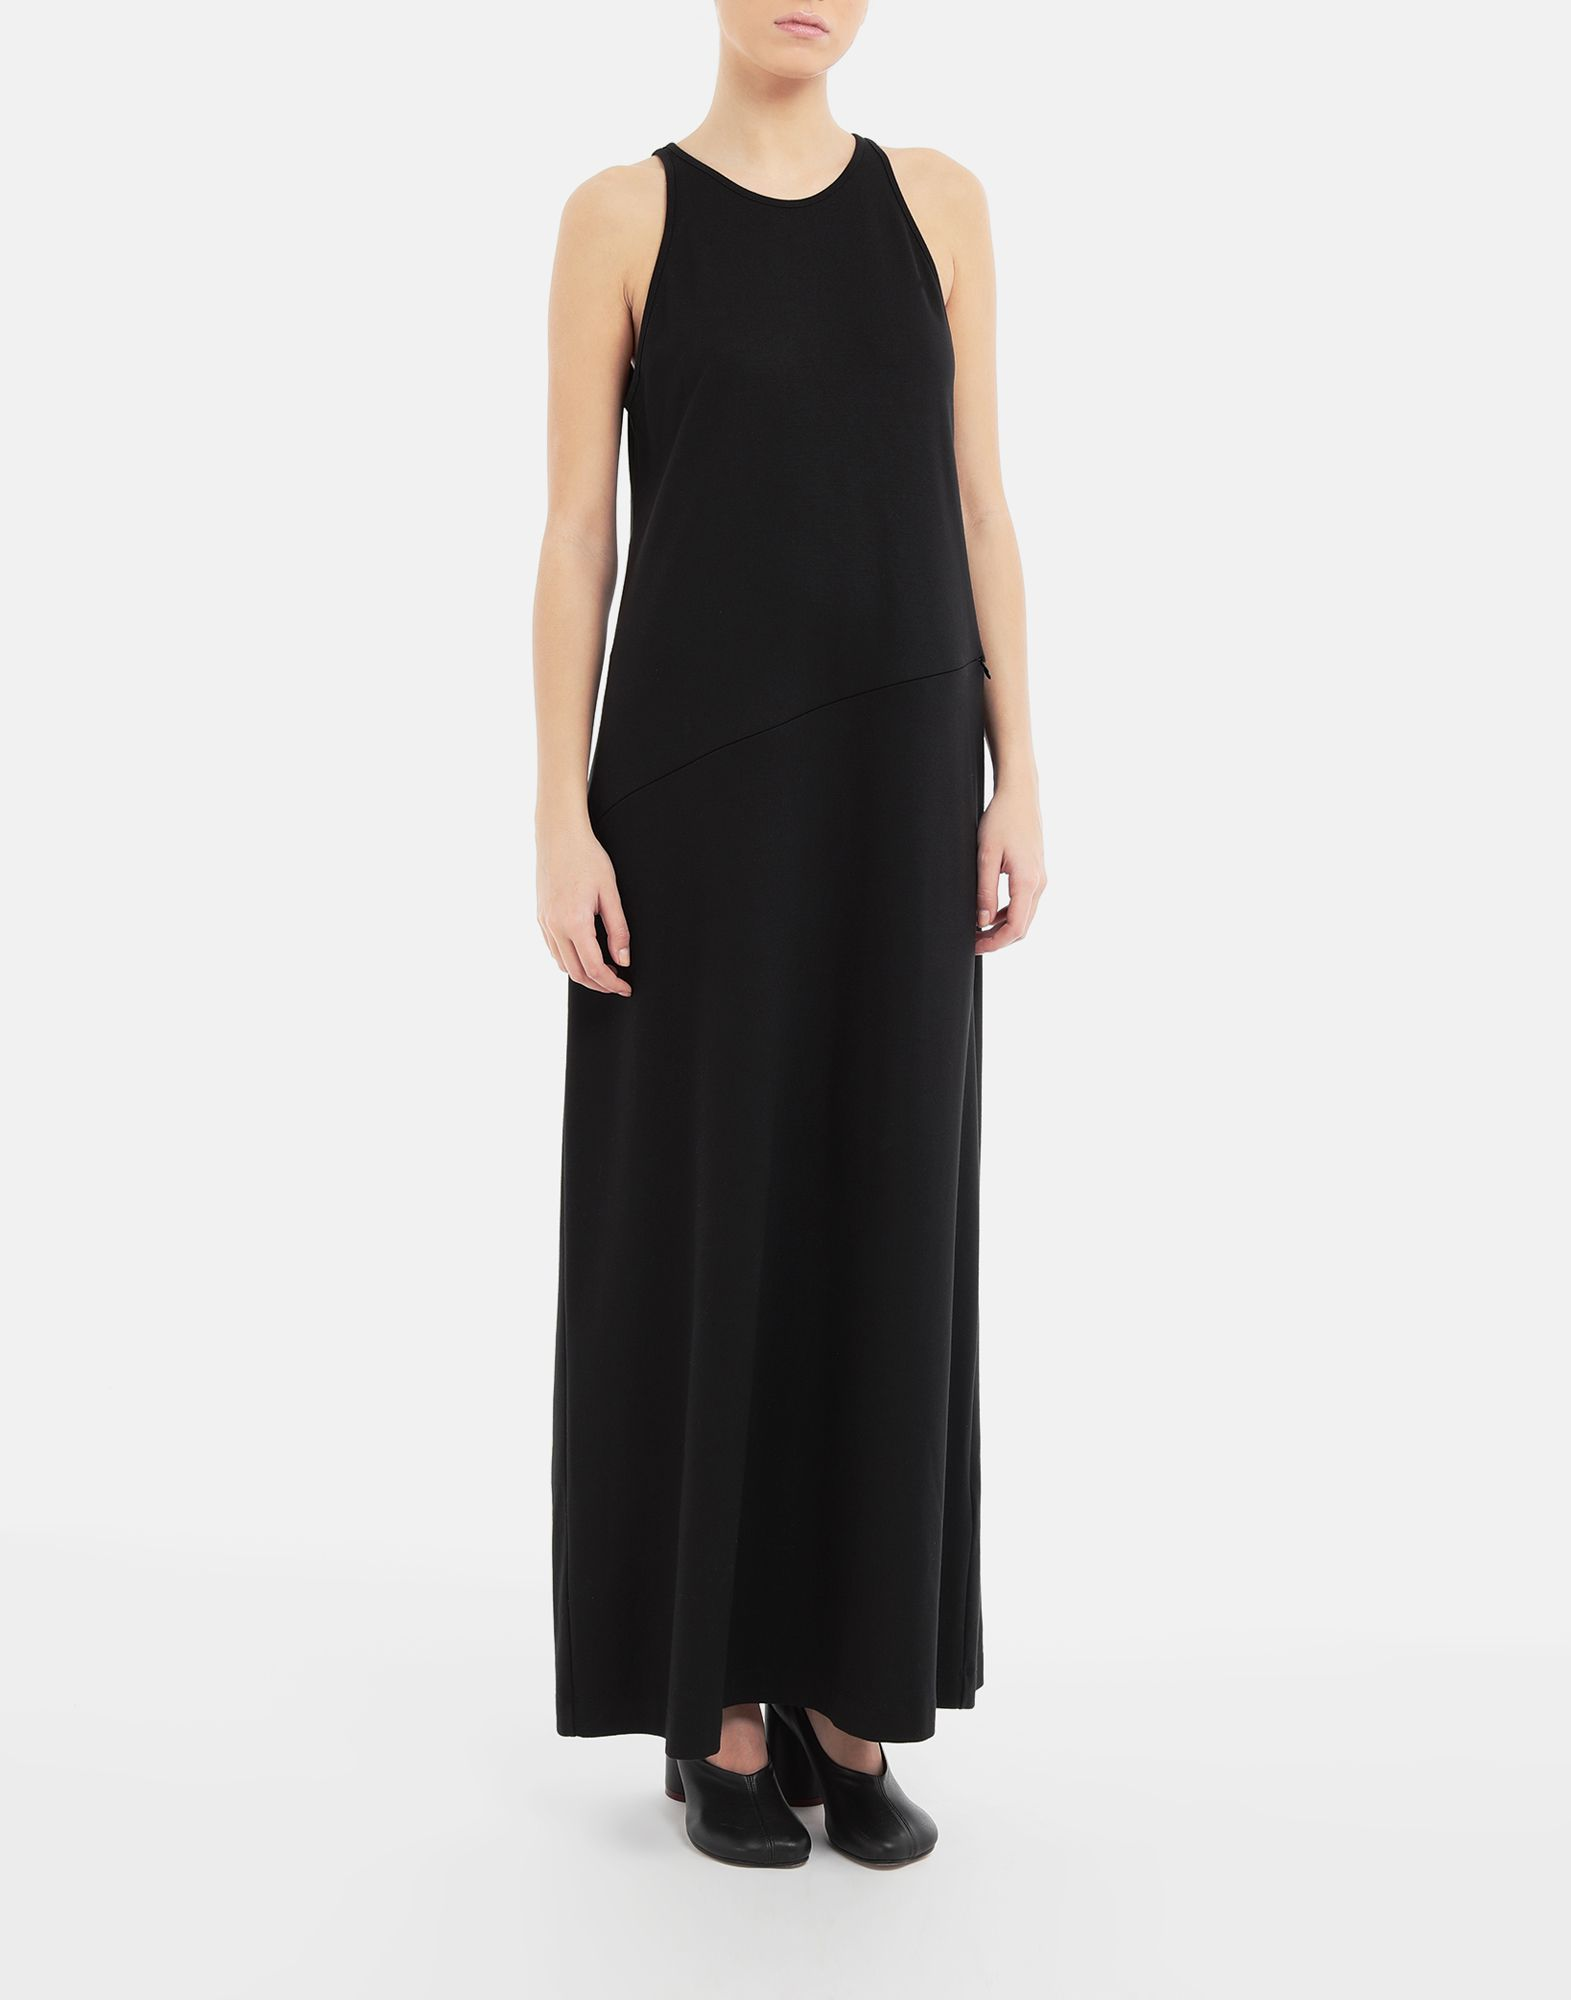 MM6 MAISON MARGIELA Two-part dress 3/4 length dress Woman r